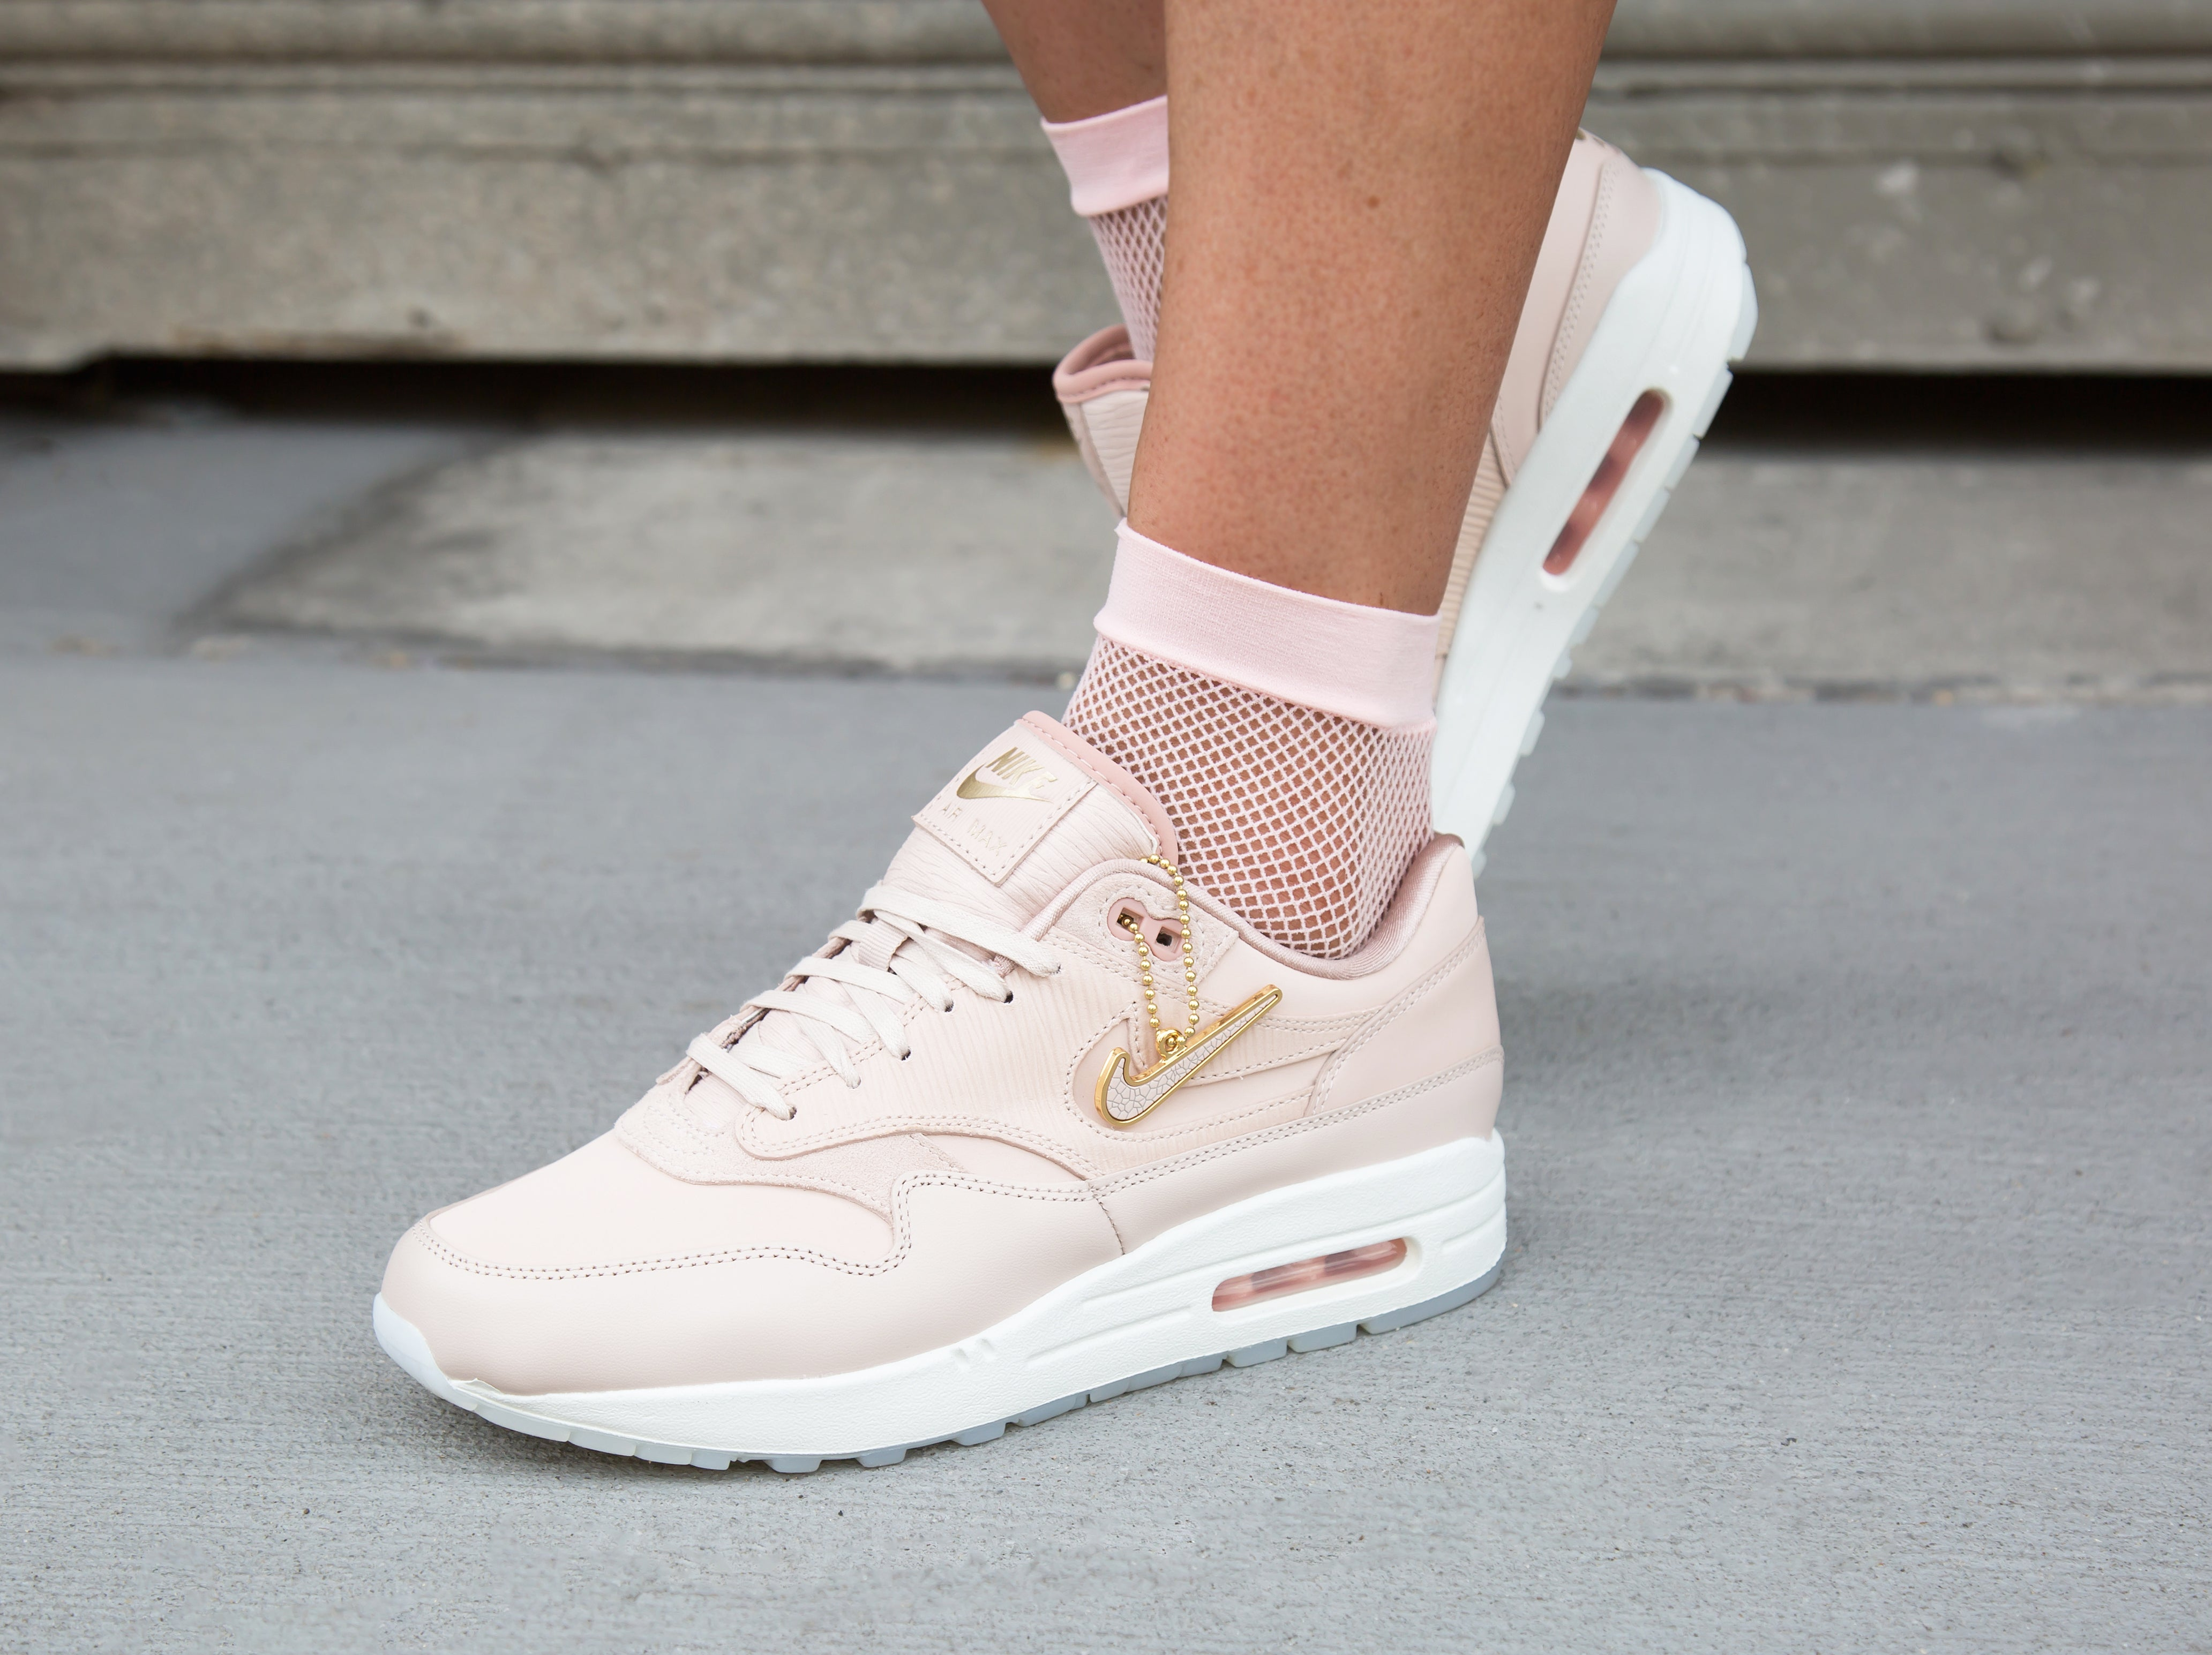 hot sale online 8149a dbeb7 SNEAKER RELEASES | Nike Air Max 1 Premium Particle Beige | January 12